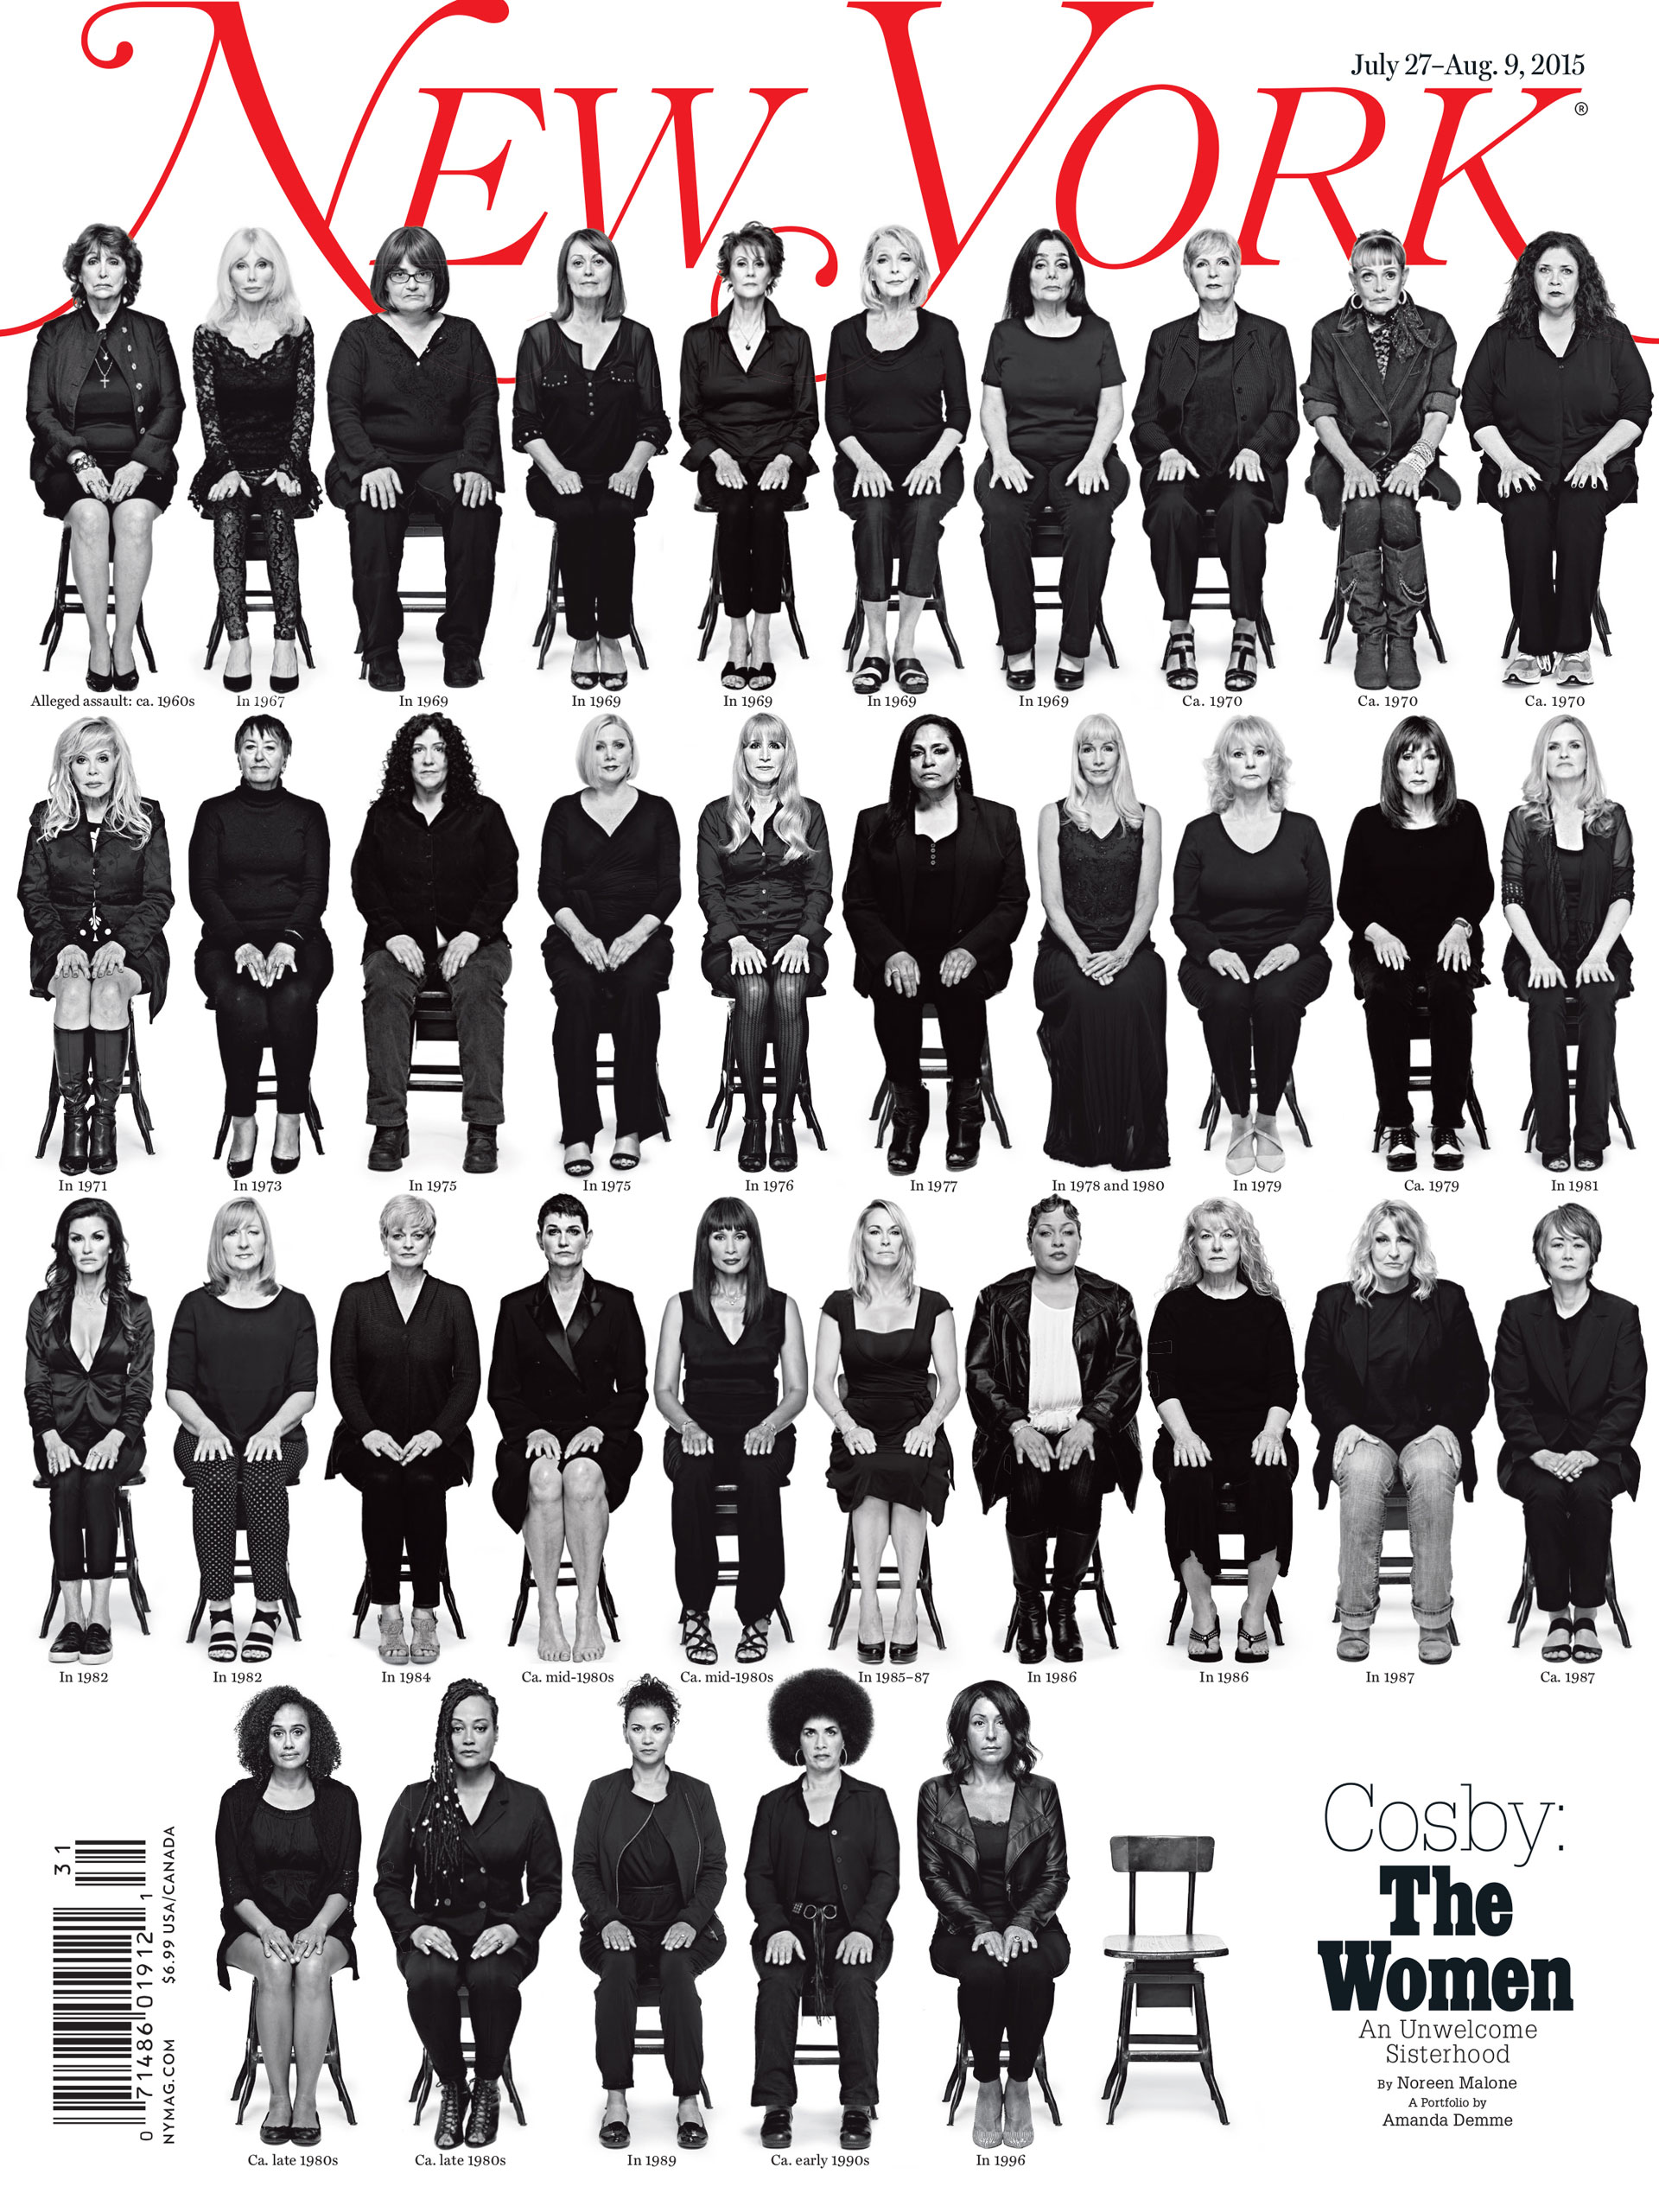 New York Magazine,  July 27-Aug. 9, 2015. Photograph by Amanda Demme.                                                              These women have one thing in common - Bill Cosby. One man and all of these women, and the suggestion of countless more (with the empty chair). They demonstrated courage, conviction, and strength as they came together for this cover – after so many years of hiding behind the horrible curtain of guilt, shame, and fear. This cover became the symbol for the longstanding hidden climate of sexual assault in America. And with its blunt message, we hope we were able to inspire action.                                                              —Jody Quon, Director of Photography, New York Magazine